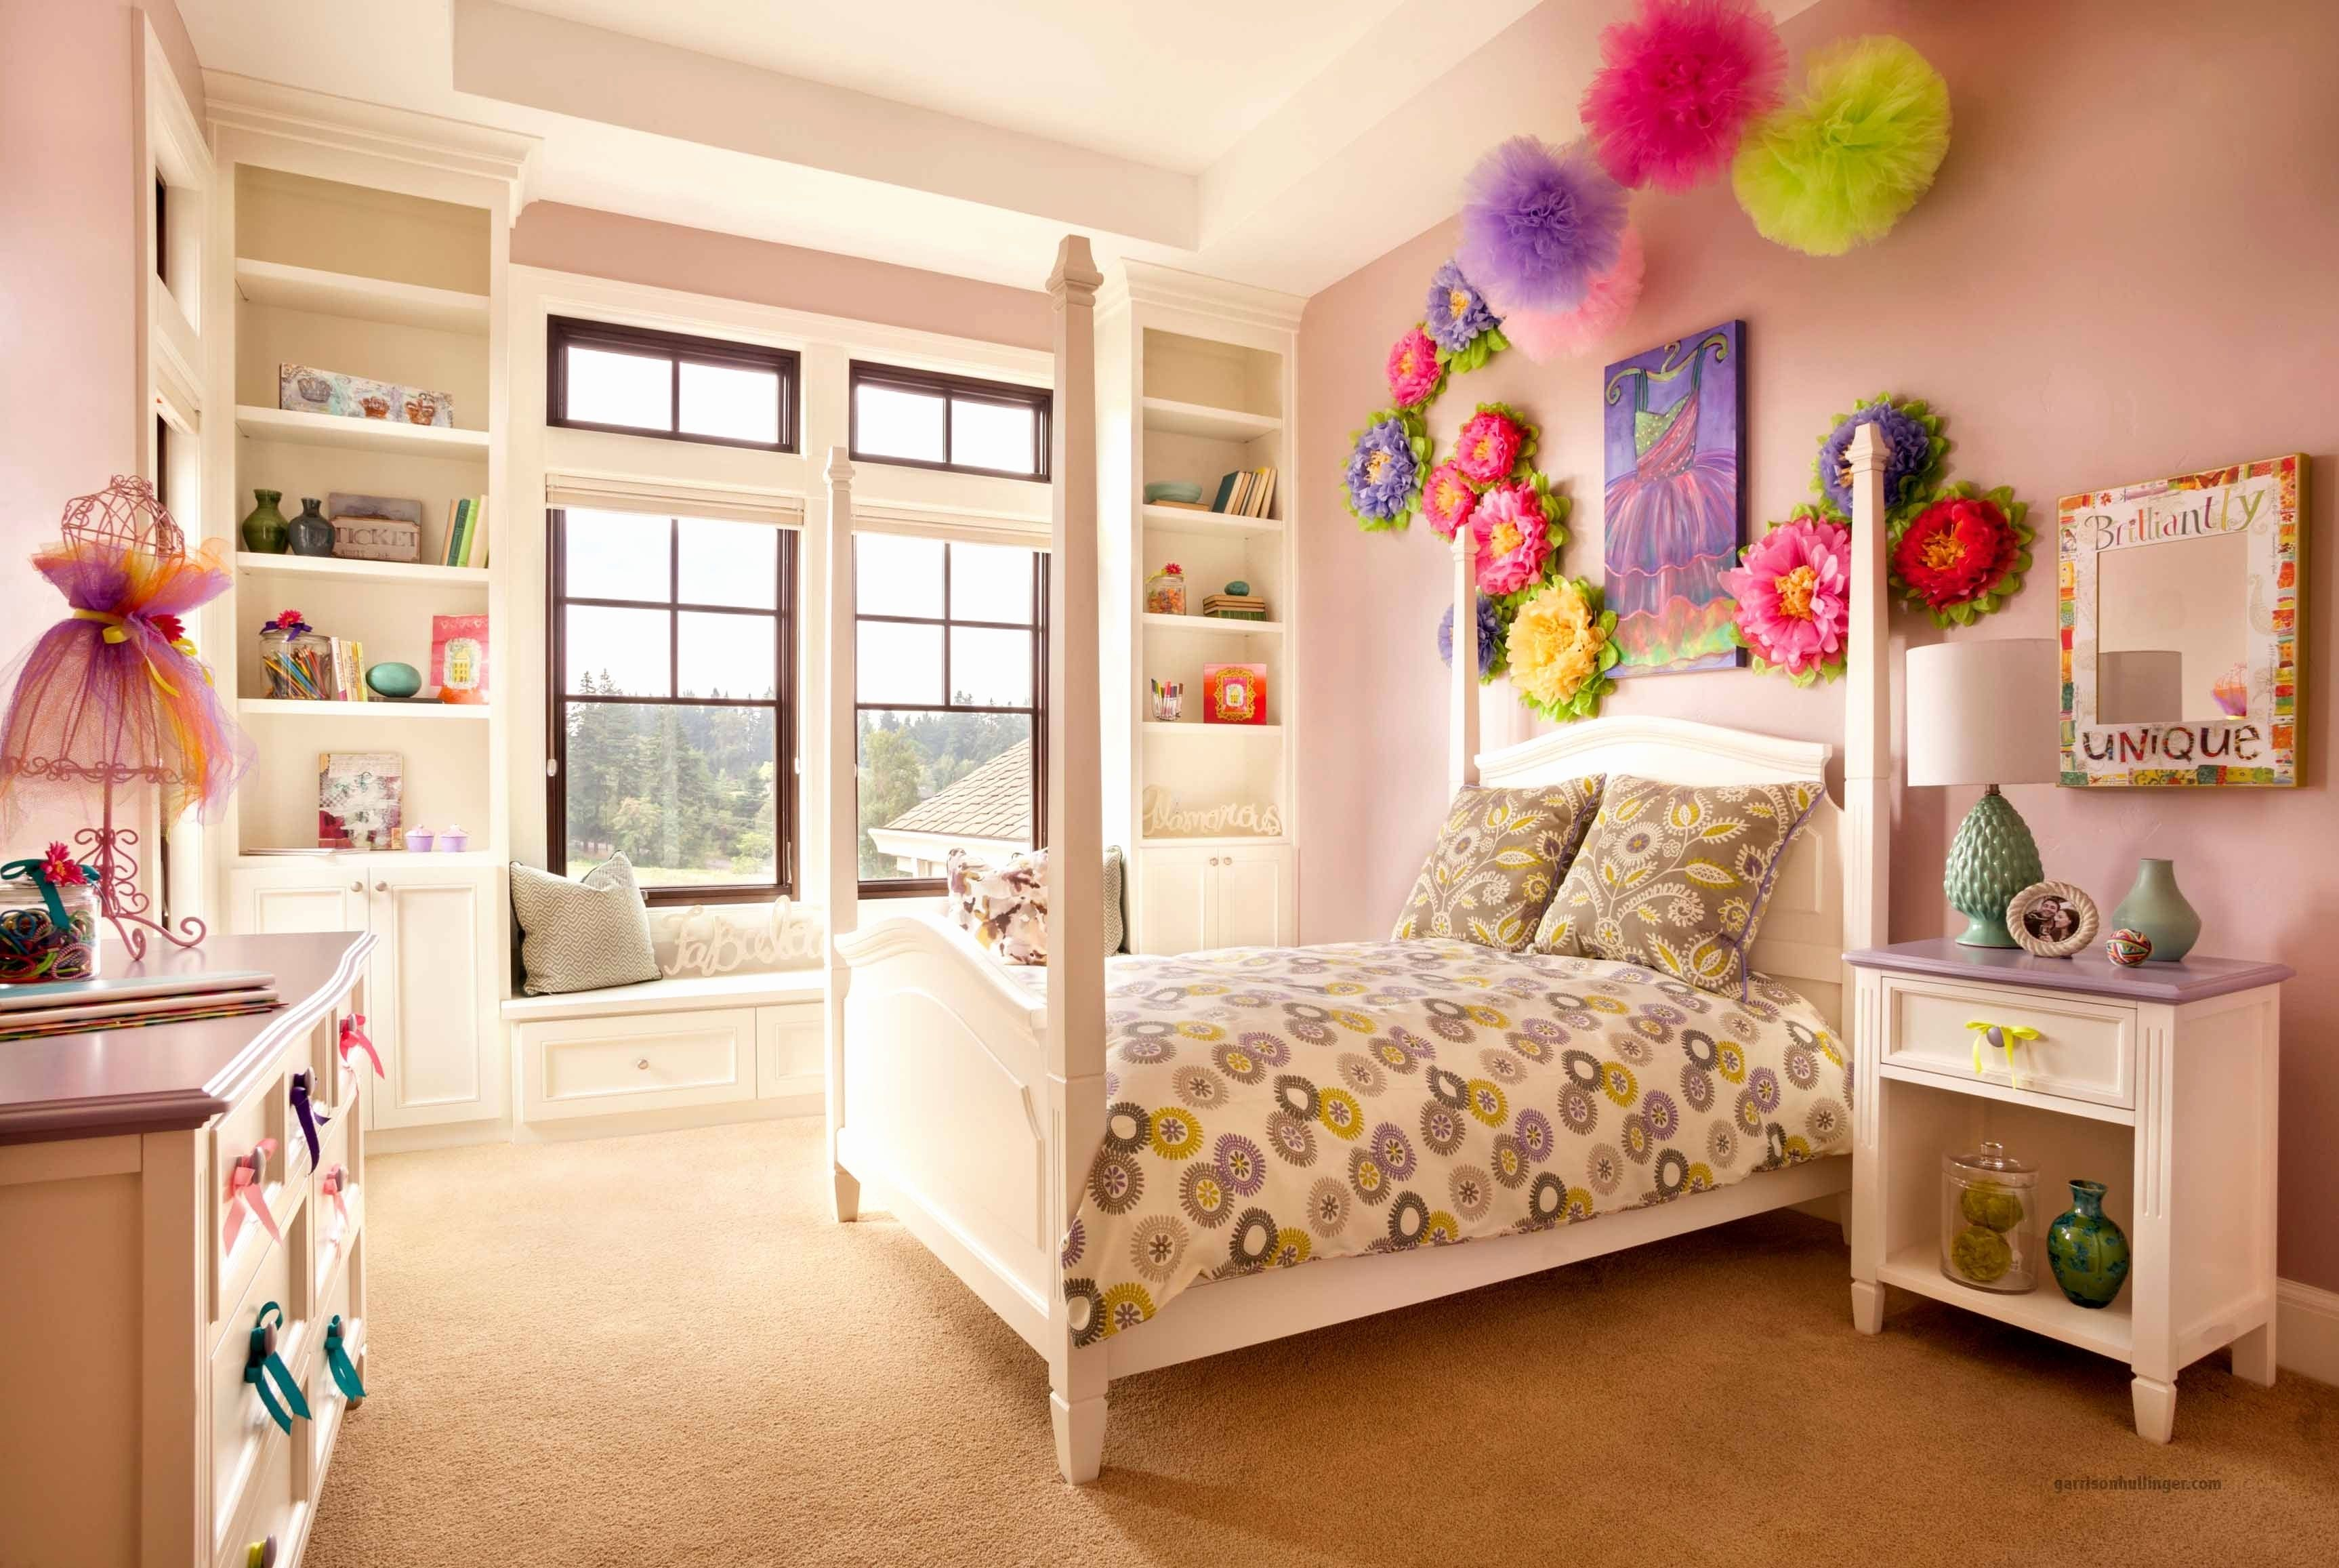 New Little Girls Bedroom Ideas On A Budget For Your